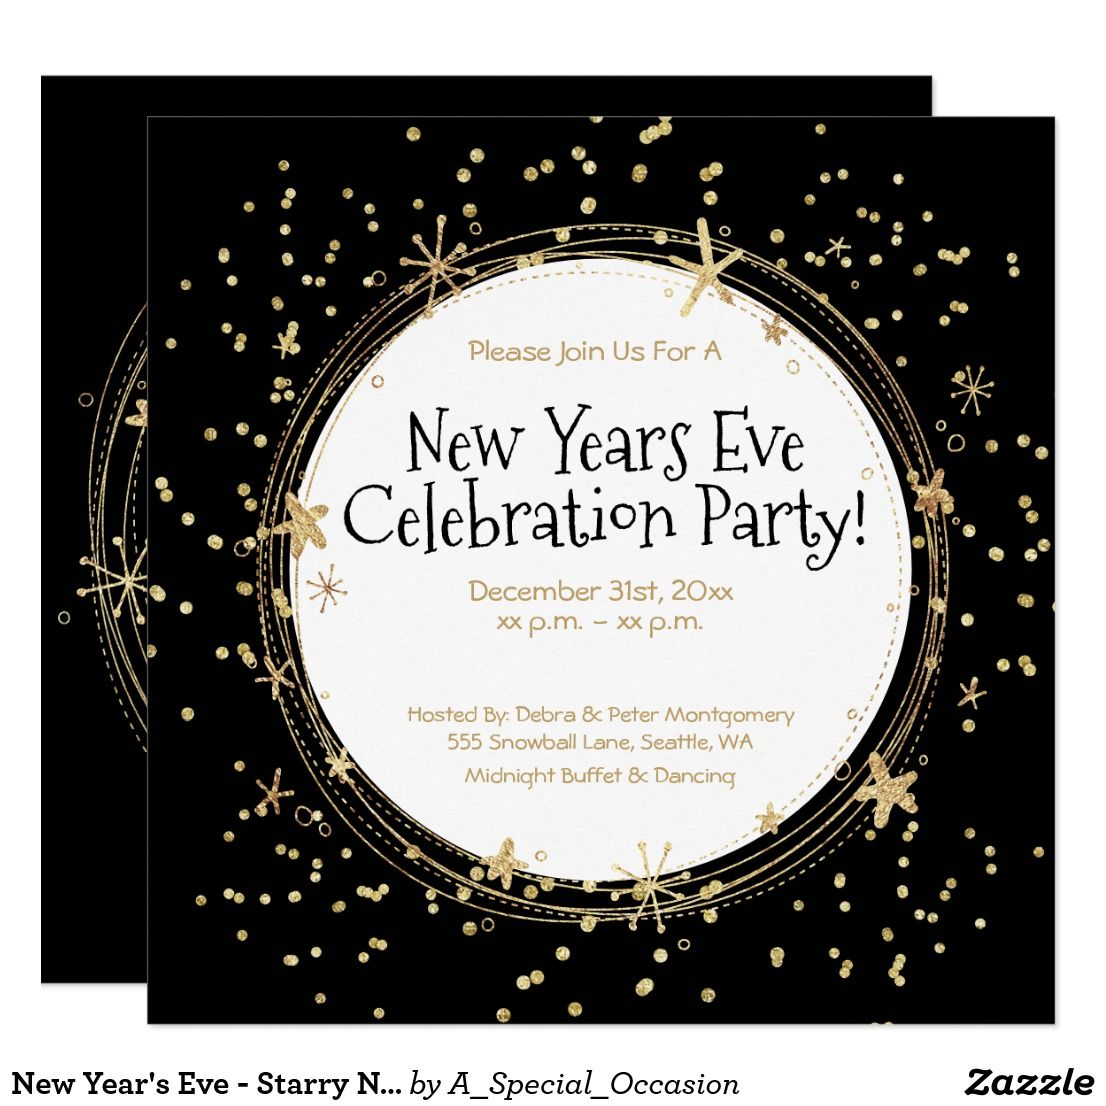 New Year S Eve Starry Night Party Invitation Zazzle Com Party Invitations New Year S Eve Celebrations Party Night